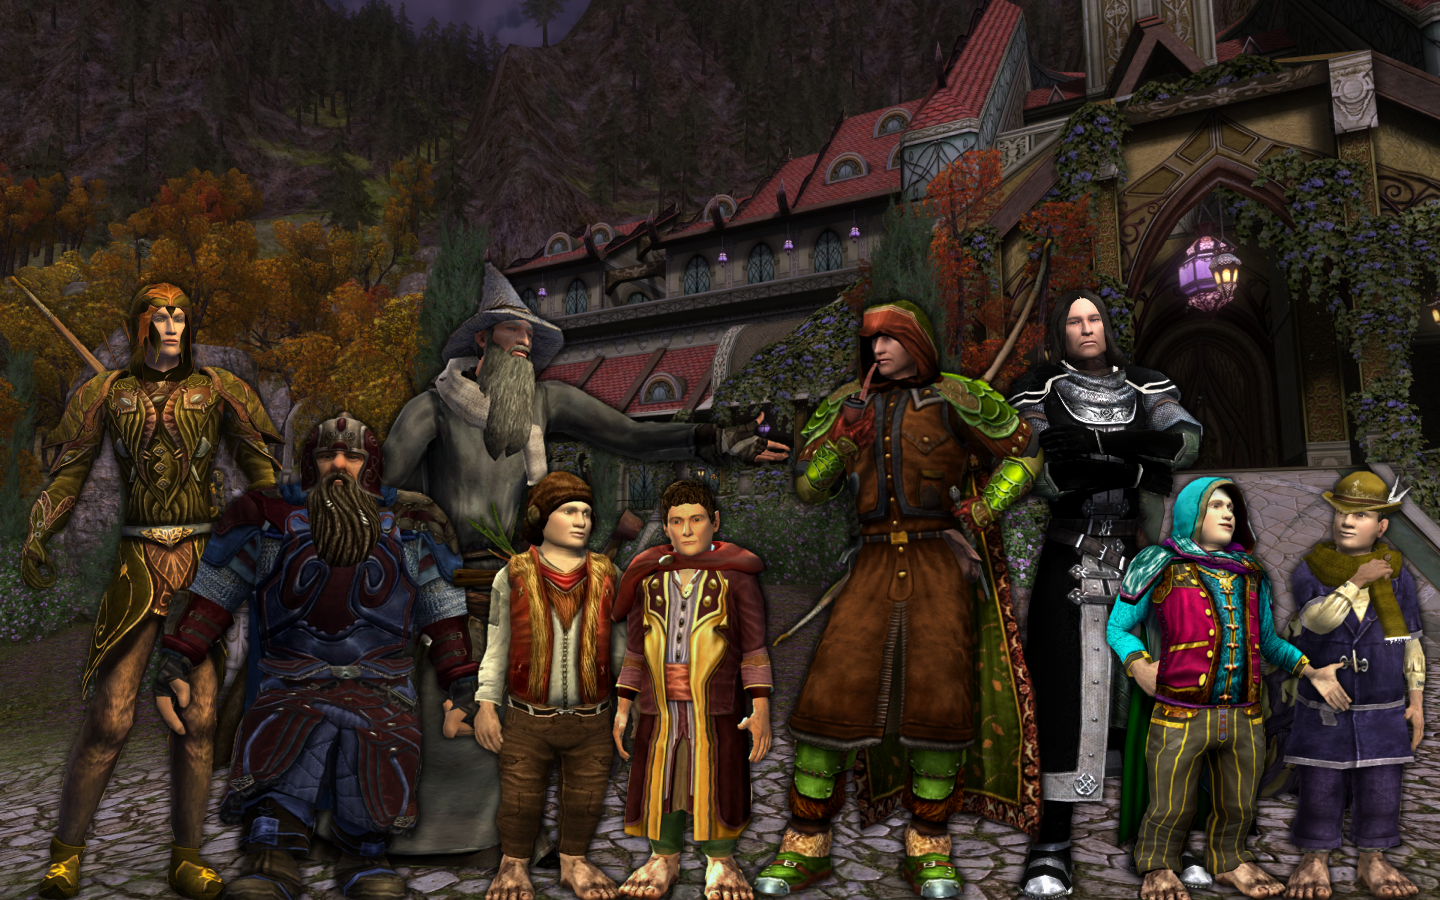 The Fellowship sets out! Leveling 1-20!